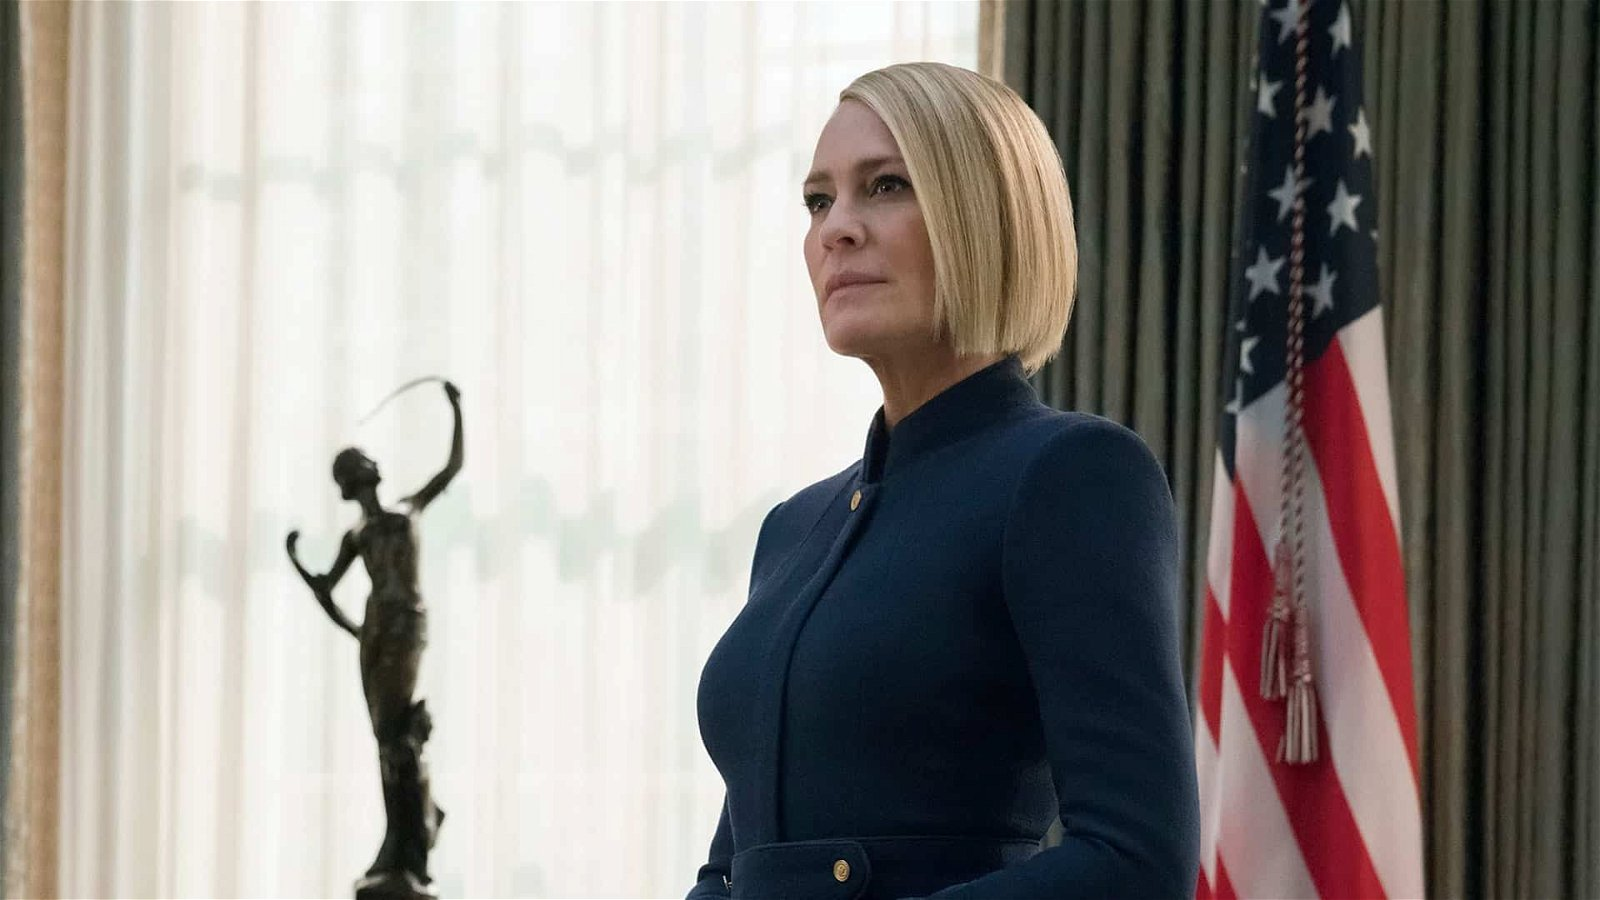 House of Cards Season 6 Review - A new president